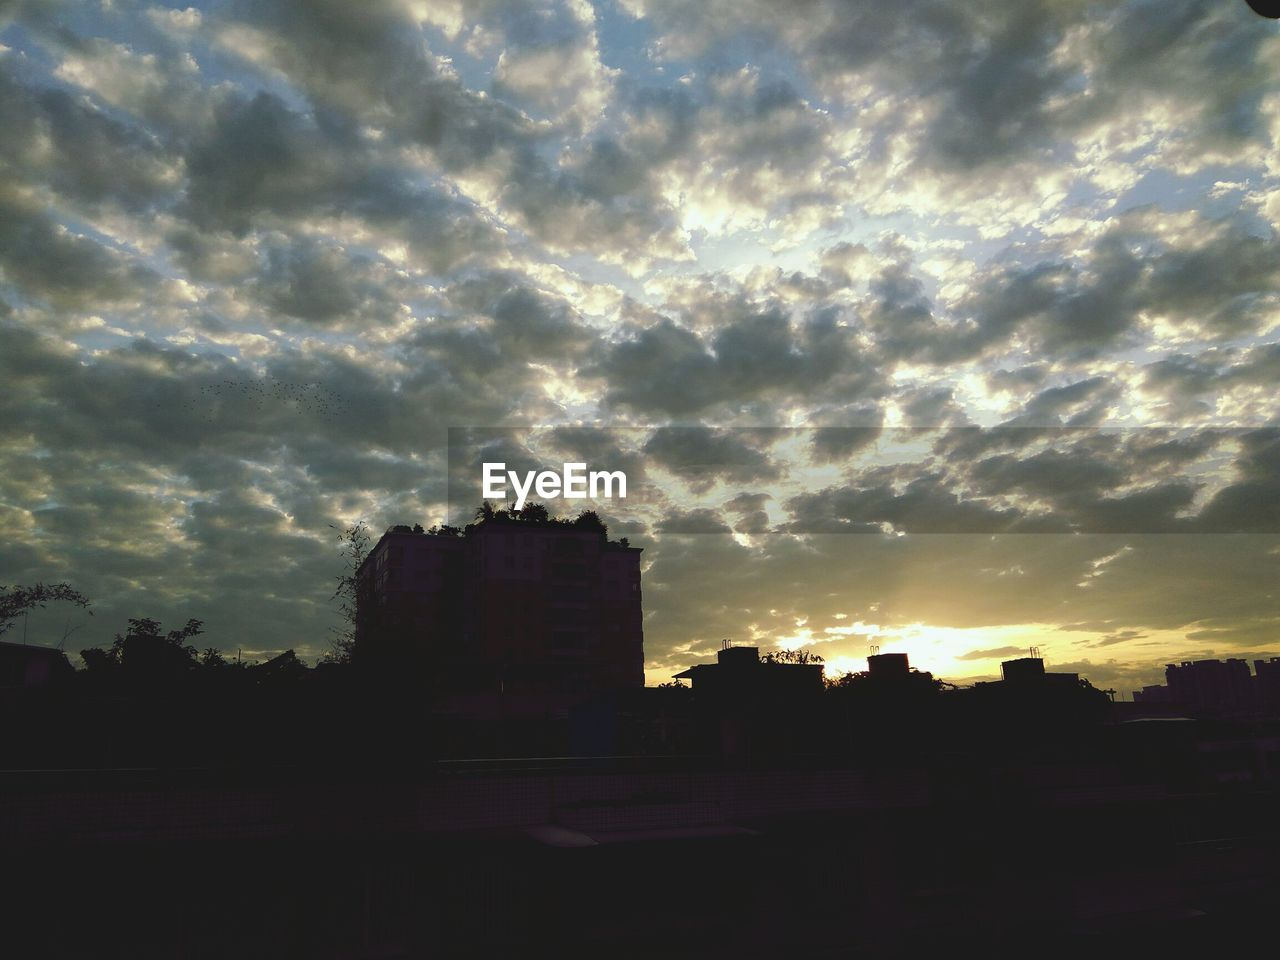 sky, sunset, architecture, silhouette, cloud - sky, built structure, building exterior, no people, sunlight, nature, outdoors, city, cityscape, day